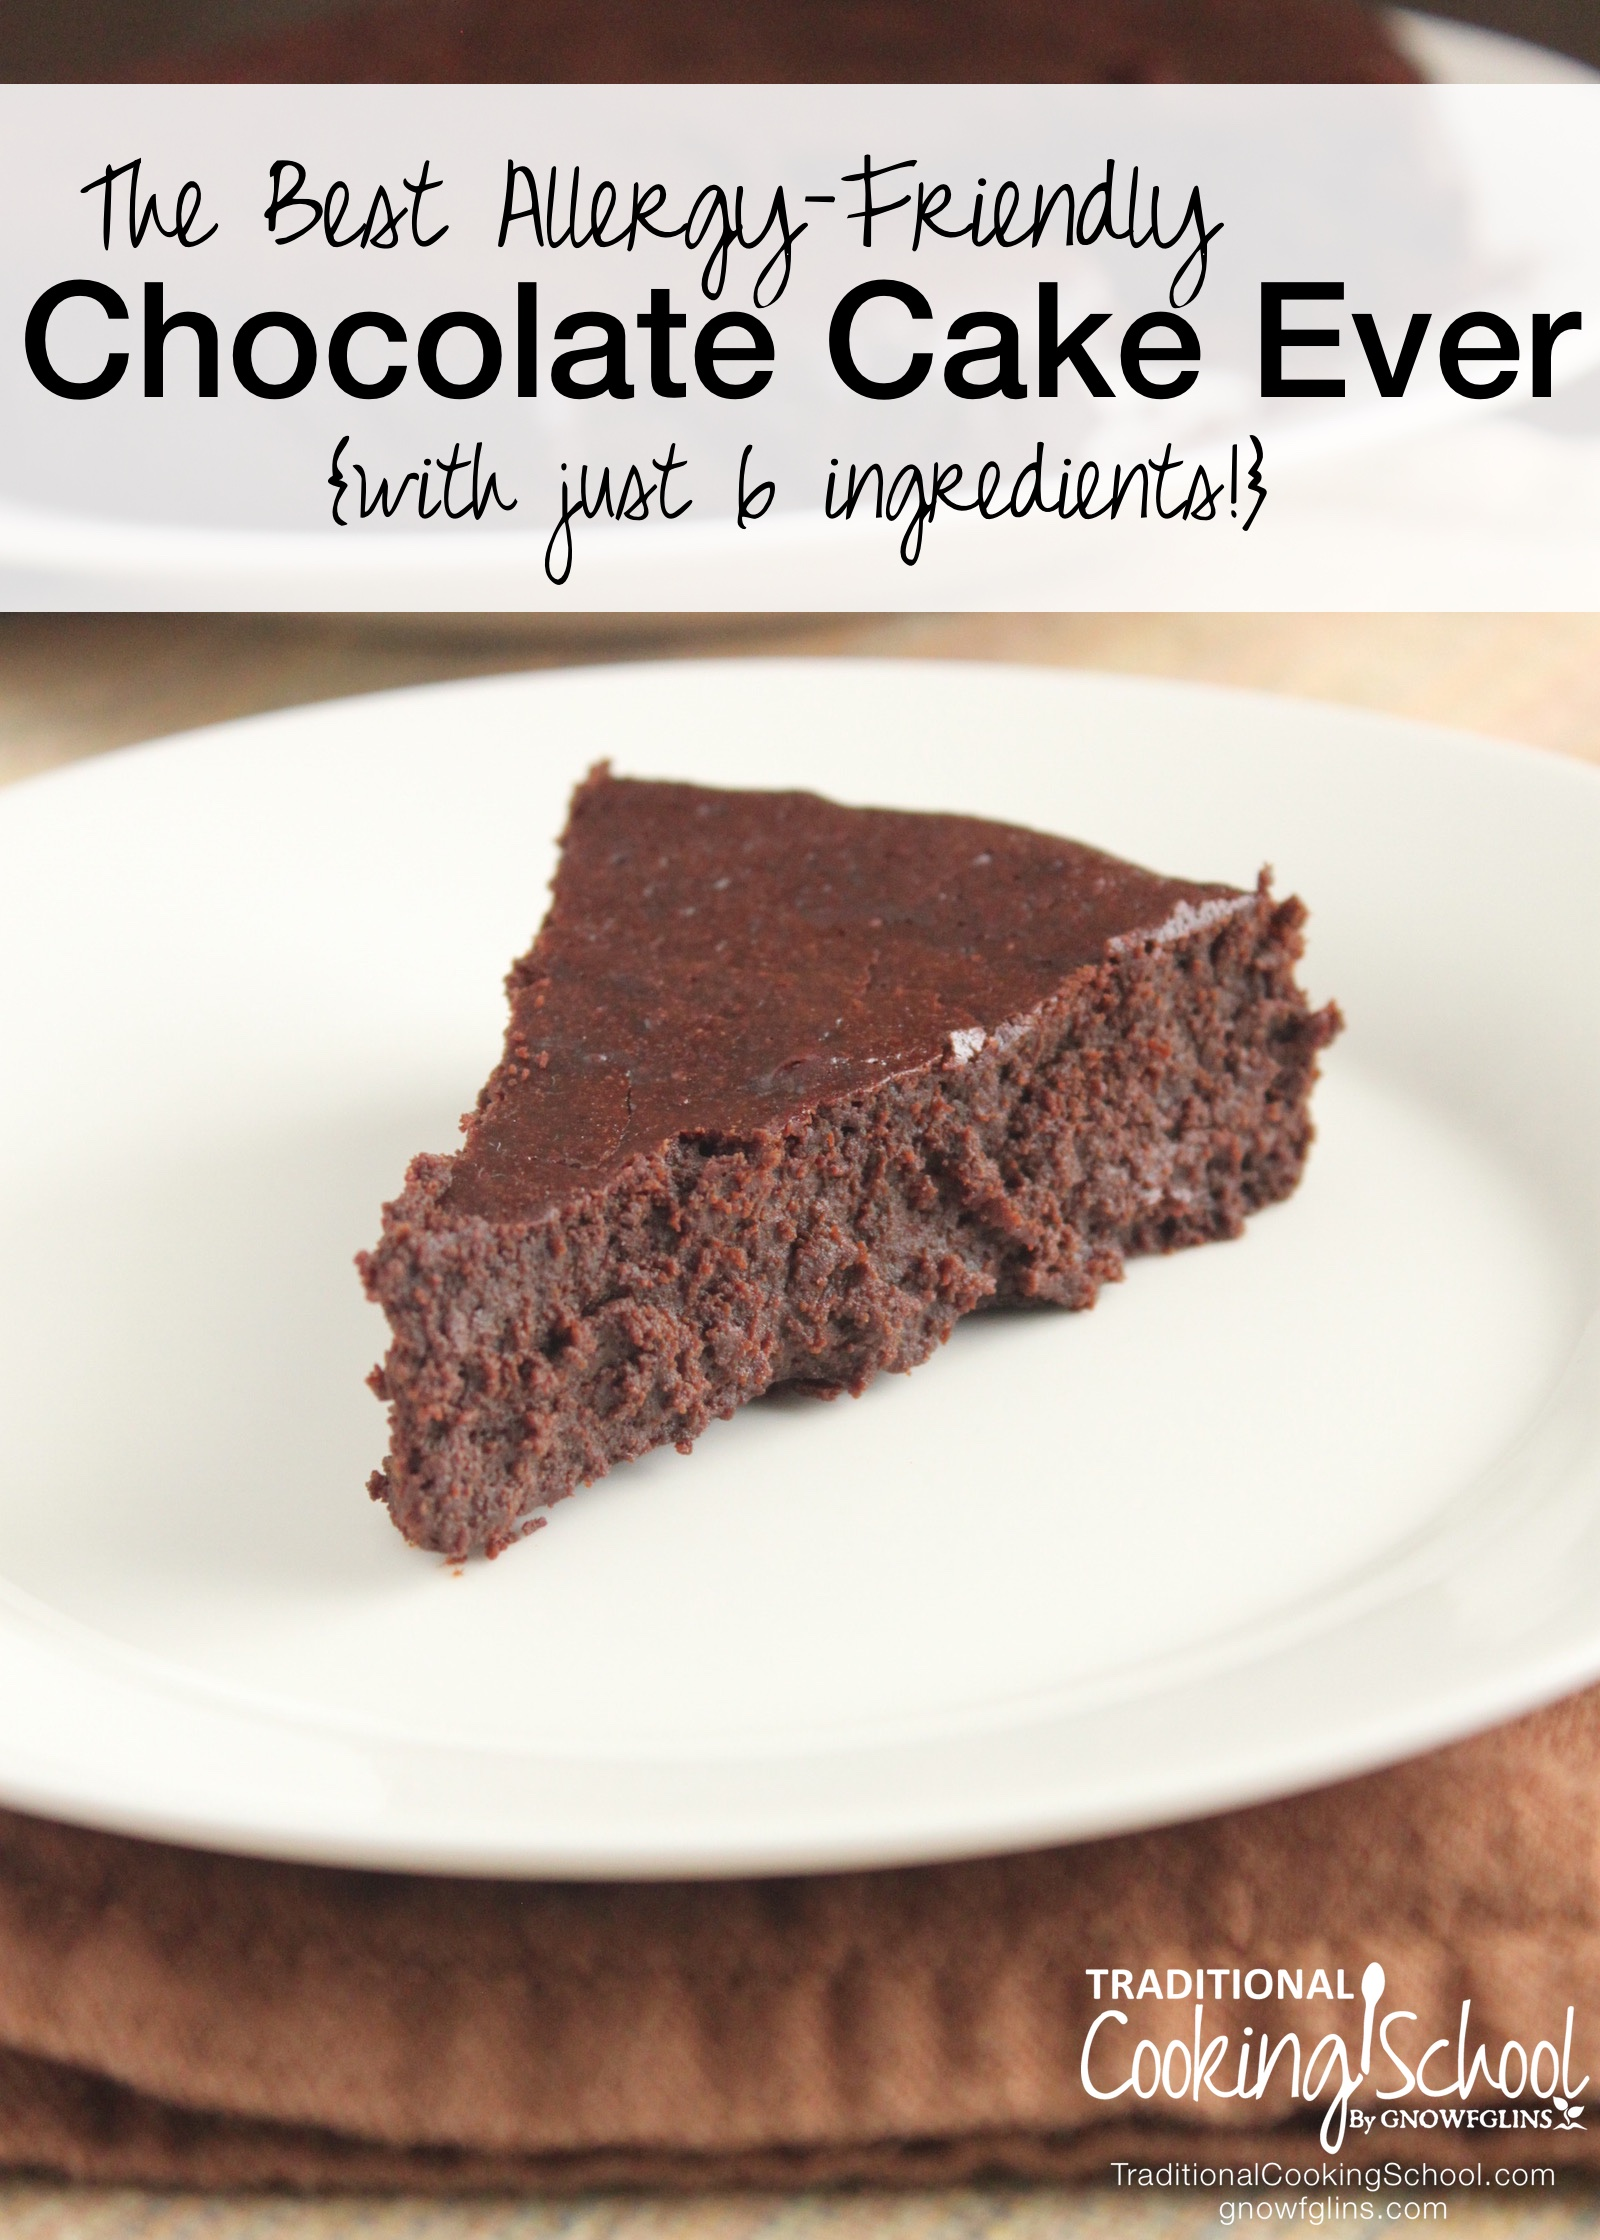 The Best Allergy-Friendly Chocolate Cake Ever | The best chocolate cake ever... I know you've heard that before. Yet many of you wanted a cake that was not just grain-free, but also dairy-free, nut-free and refined-sugar free, too. You asked, and I answered! This cake is all that, and still tastes like the best chocolate cake ever. | TraditionalCookingSchool.com